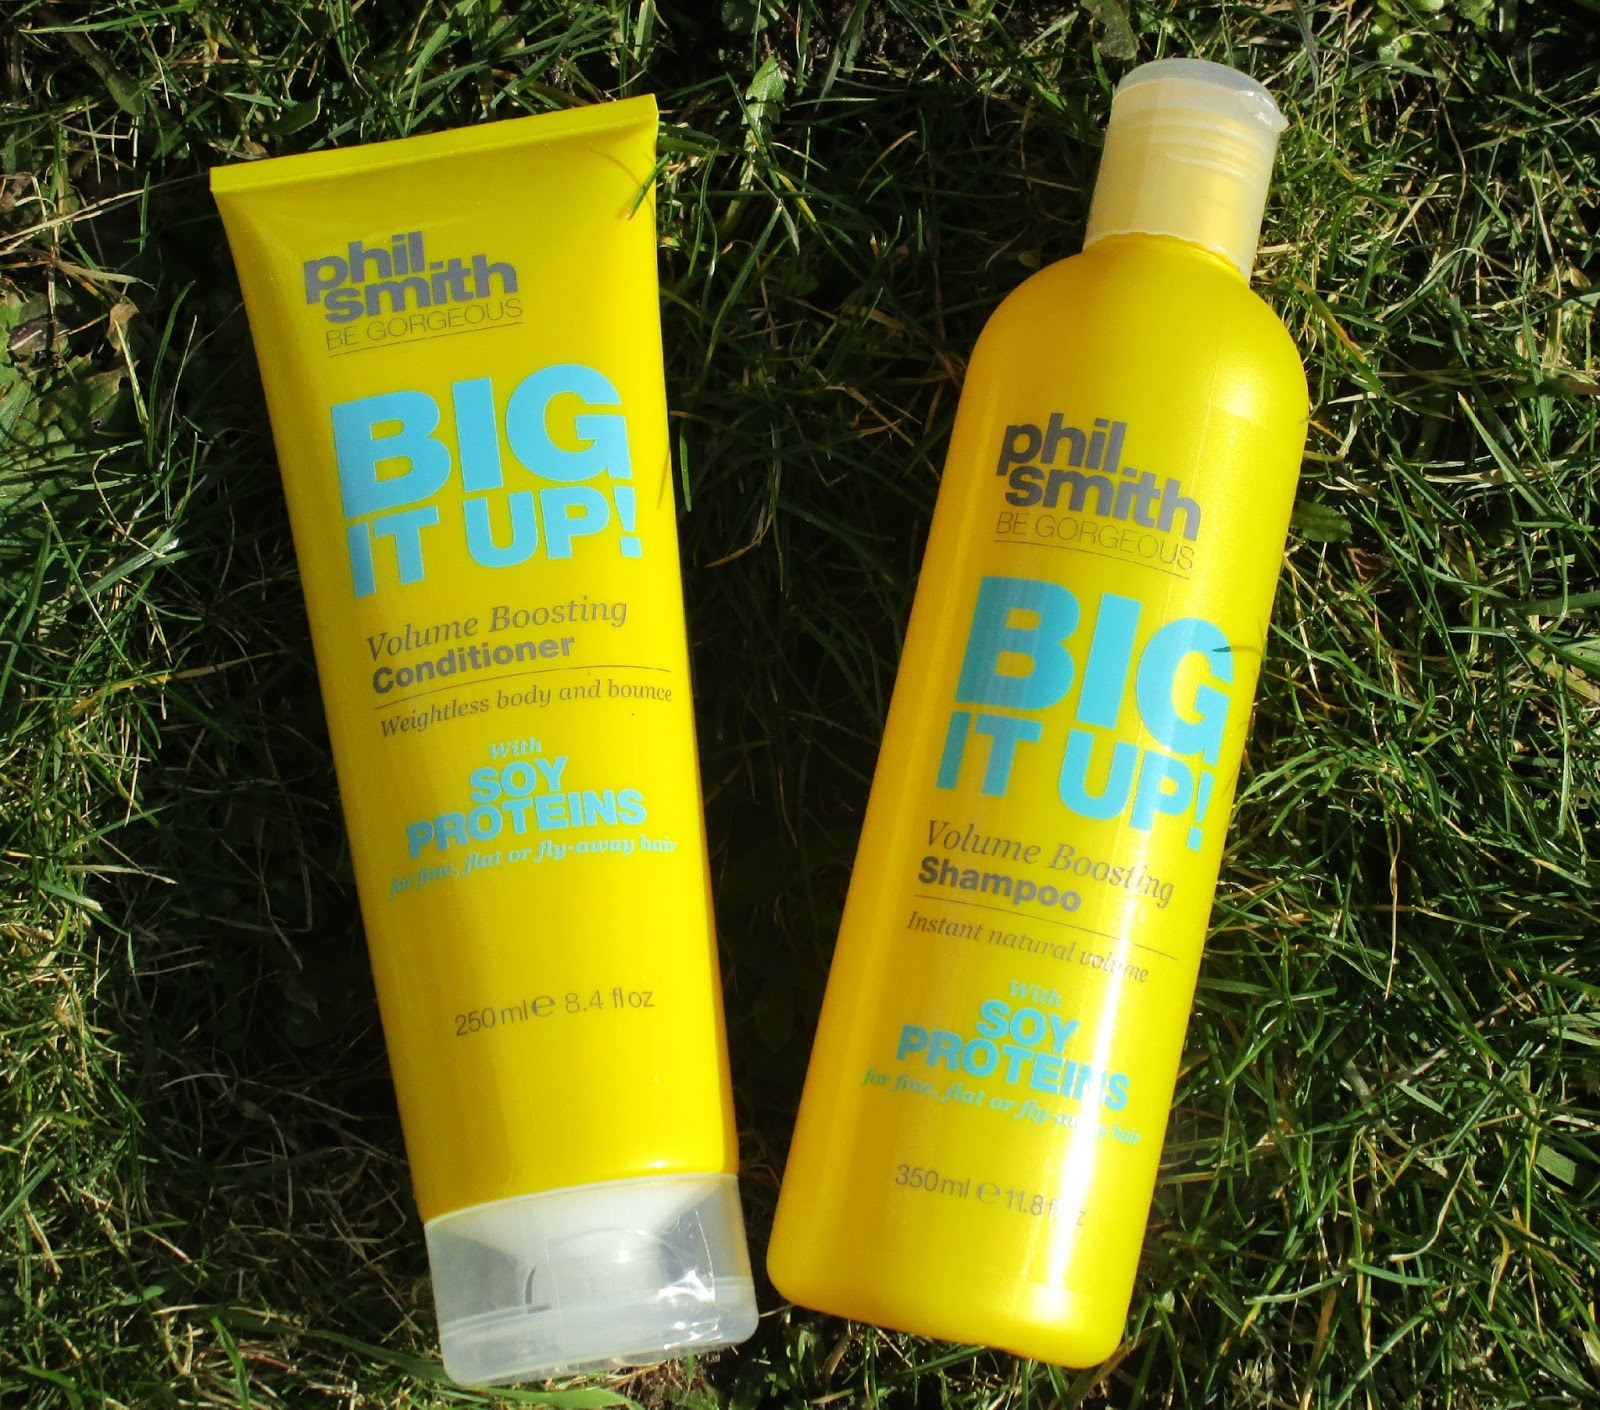 HaySparkle Phil Smith Be Gorgeous BIG IT UP Review